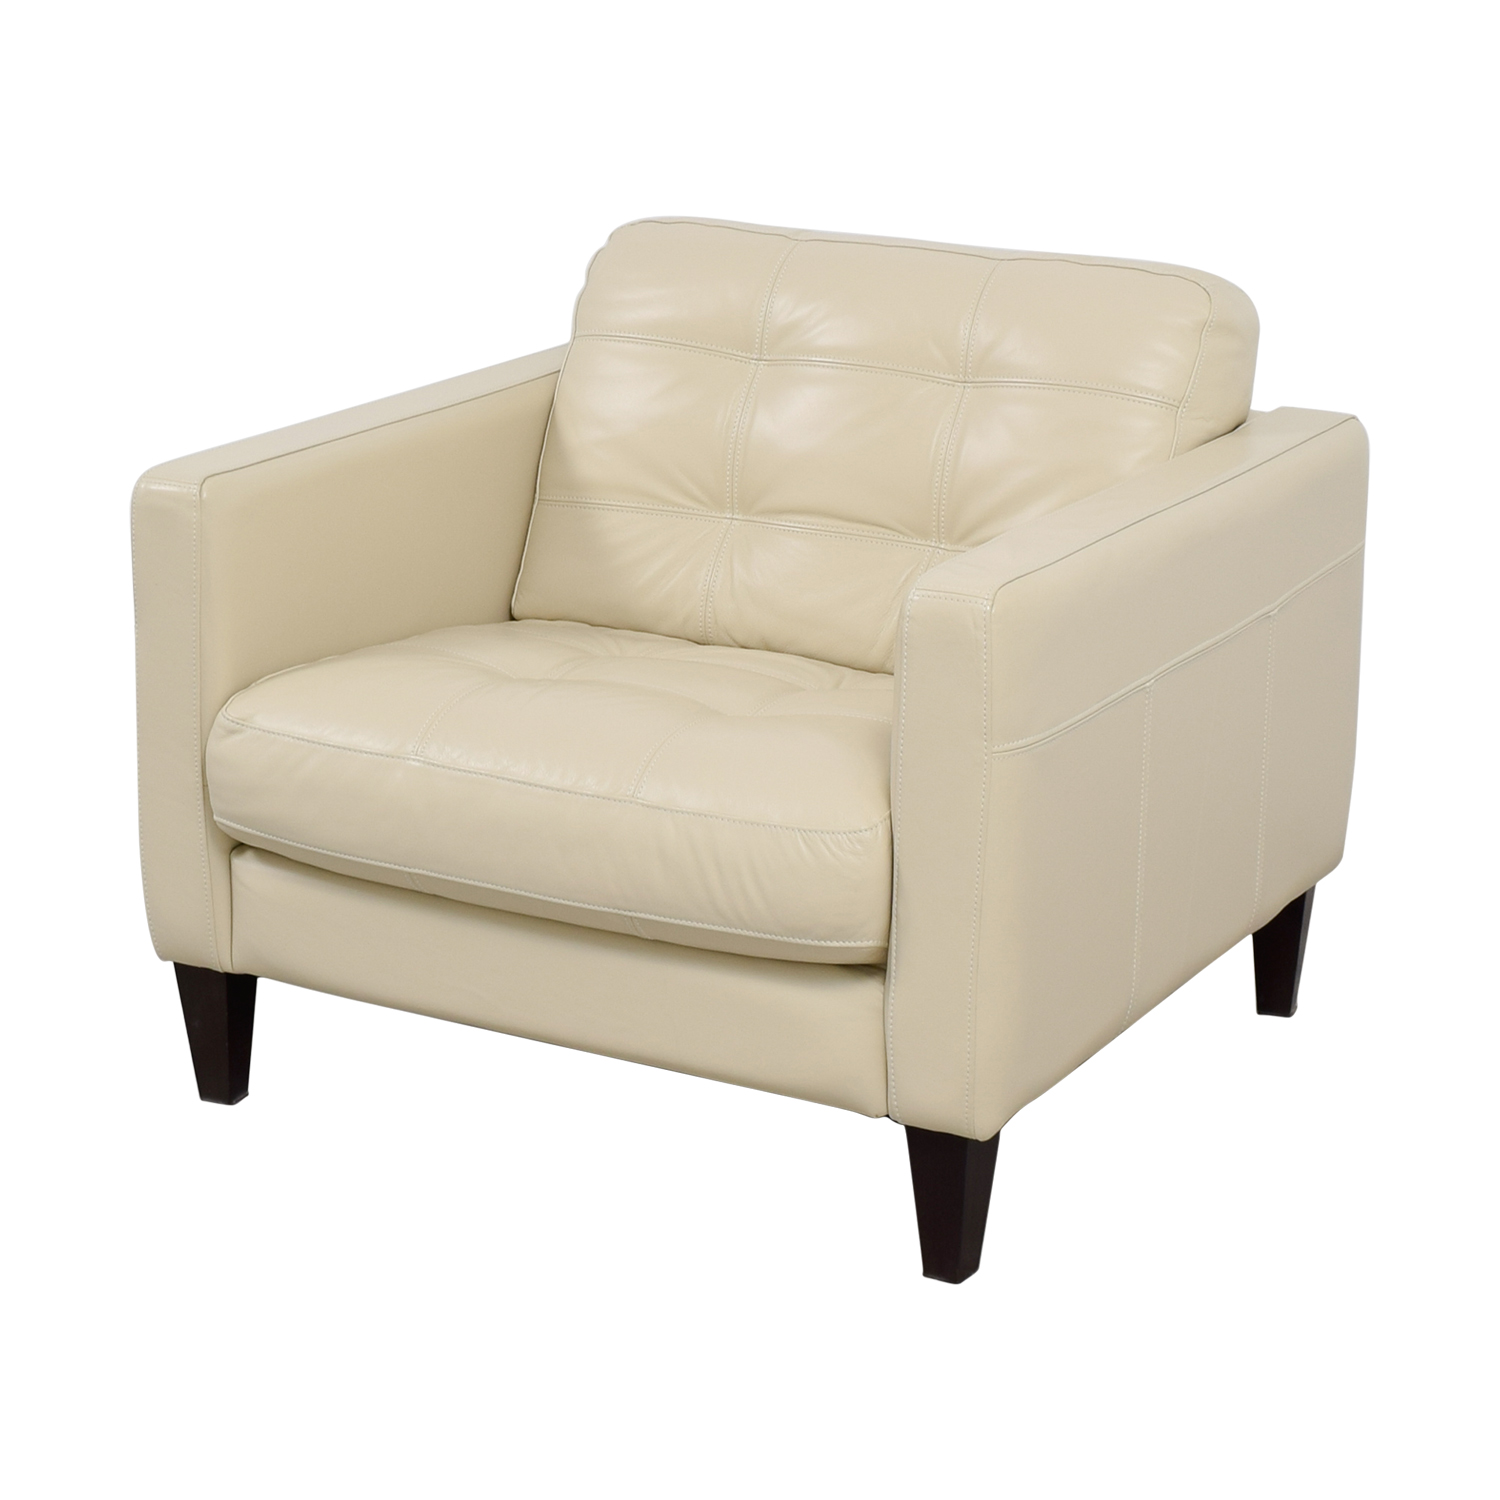 48 off macy 39 s macy 39 s milano white leather tufted accent. Black Bedroom Furniture Sets. Home Design Ideas